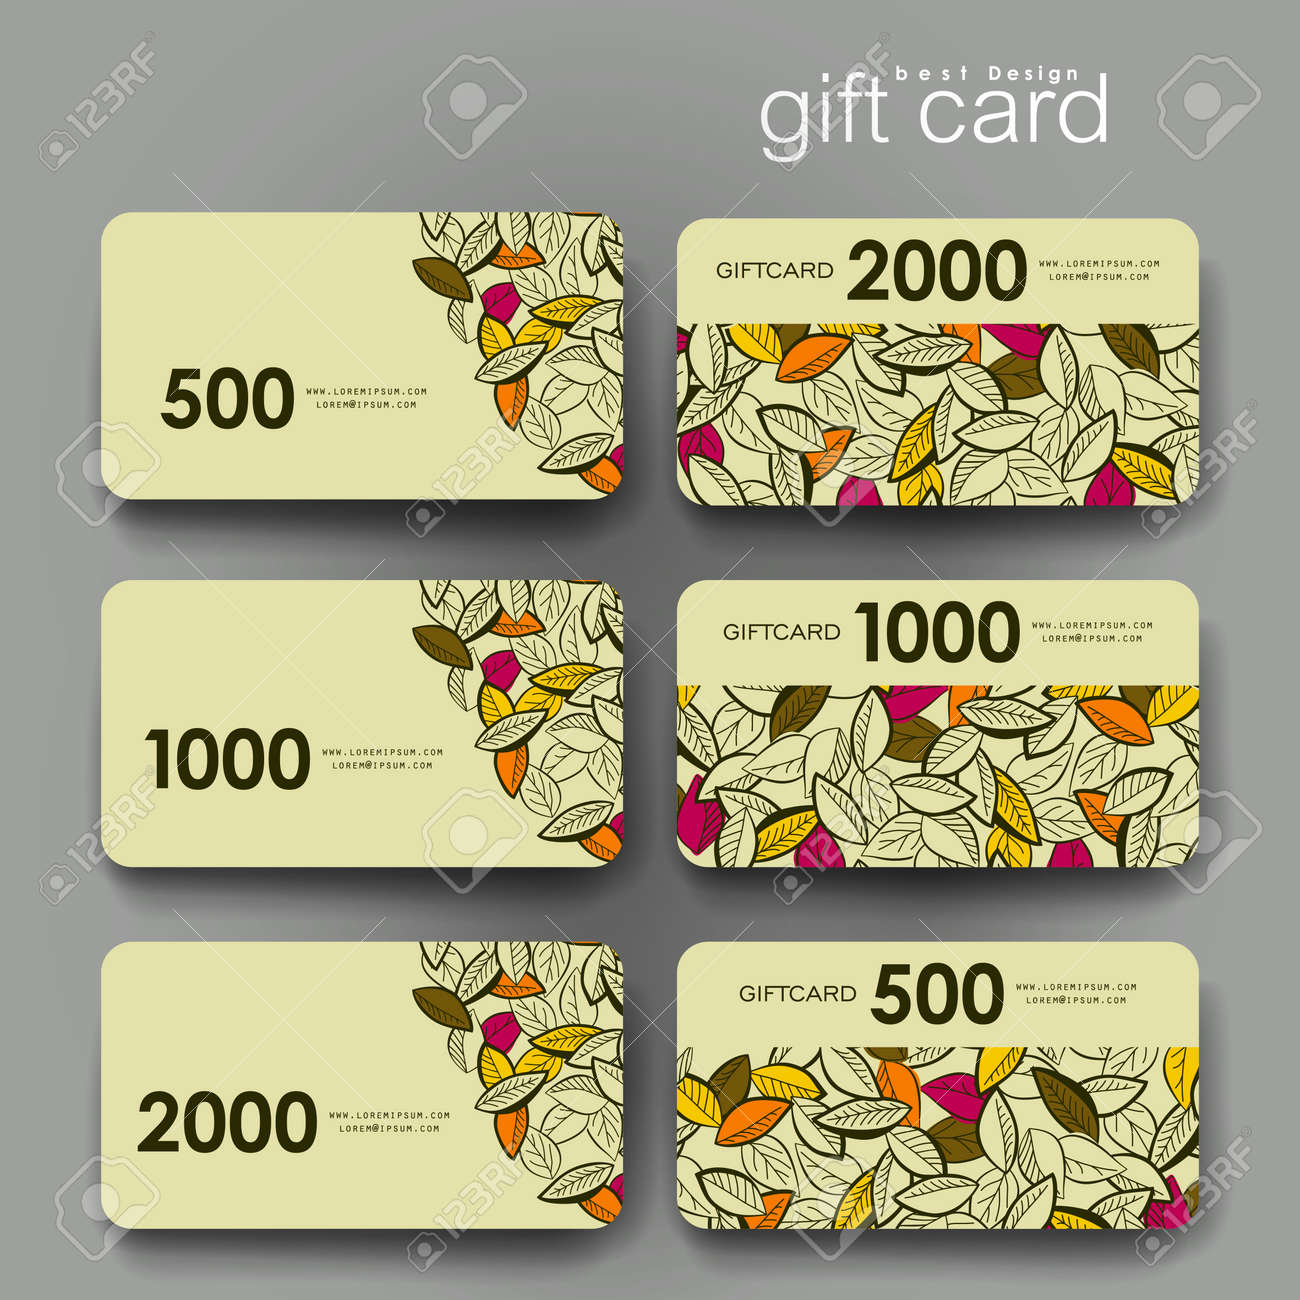 Design of discount card - Gift Coupon Discount Card Template With Autumn Leaf Ornament Background Creative Layout Design Stock